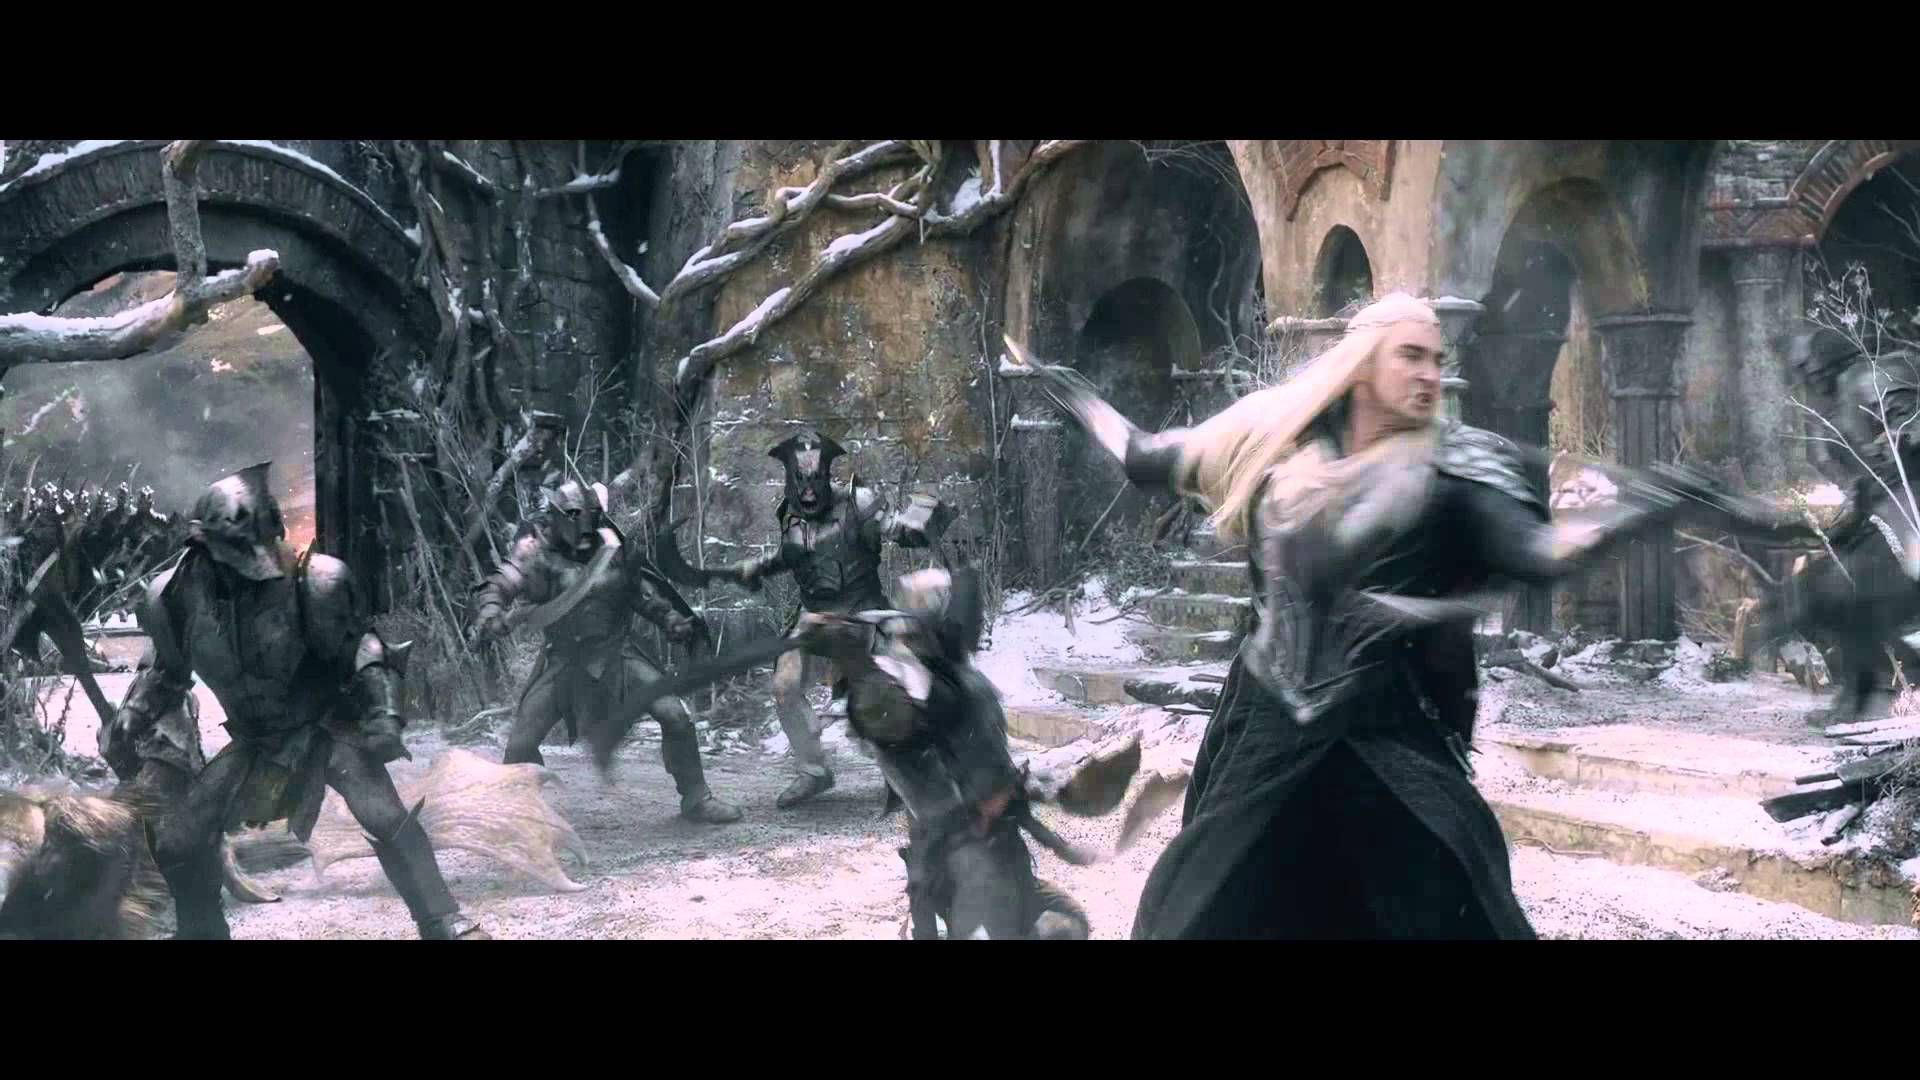 Thranduil's Attack - The Hobbit: Battle of the Five Armies